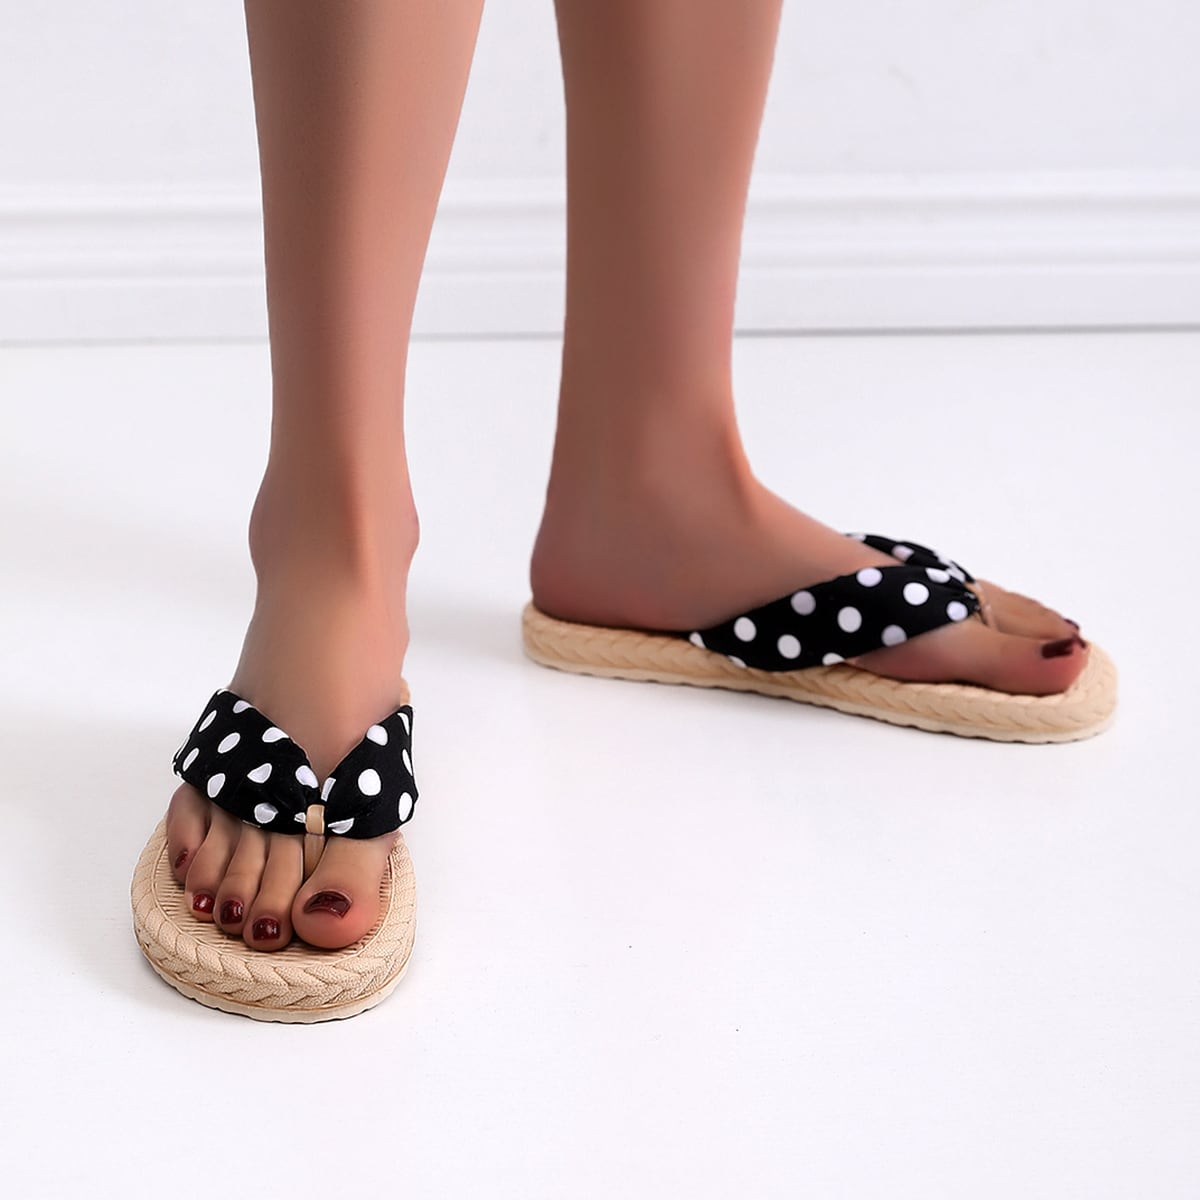 shein Polka Dot teenslippers